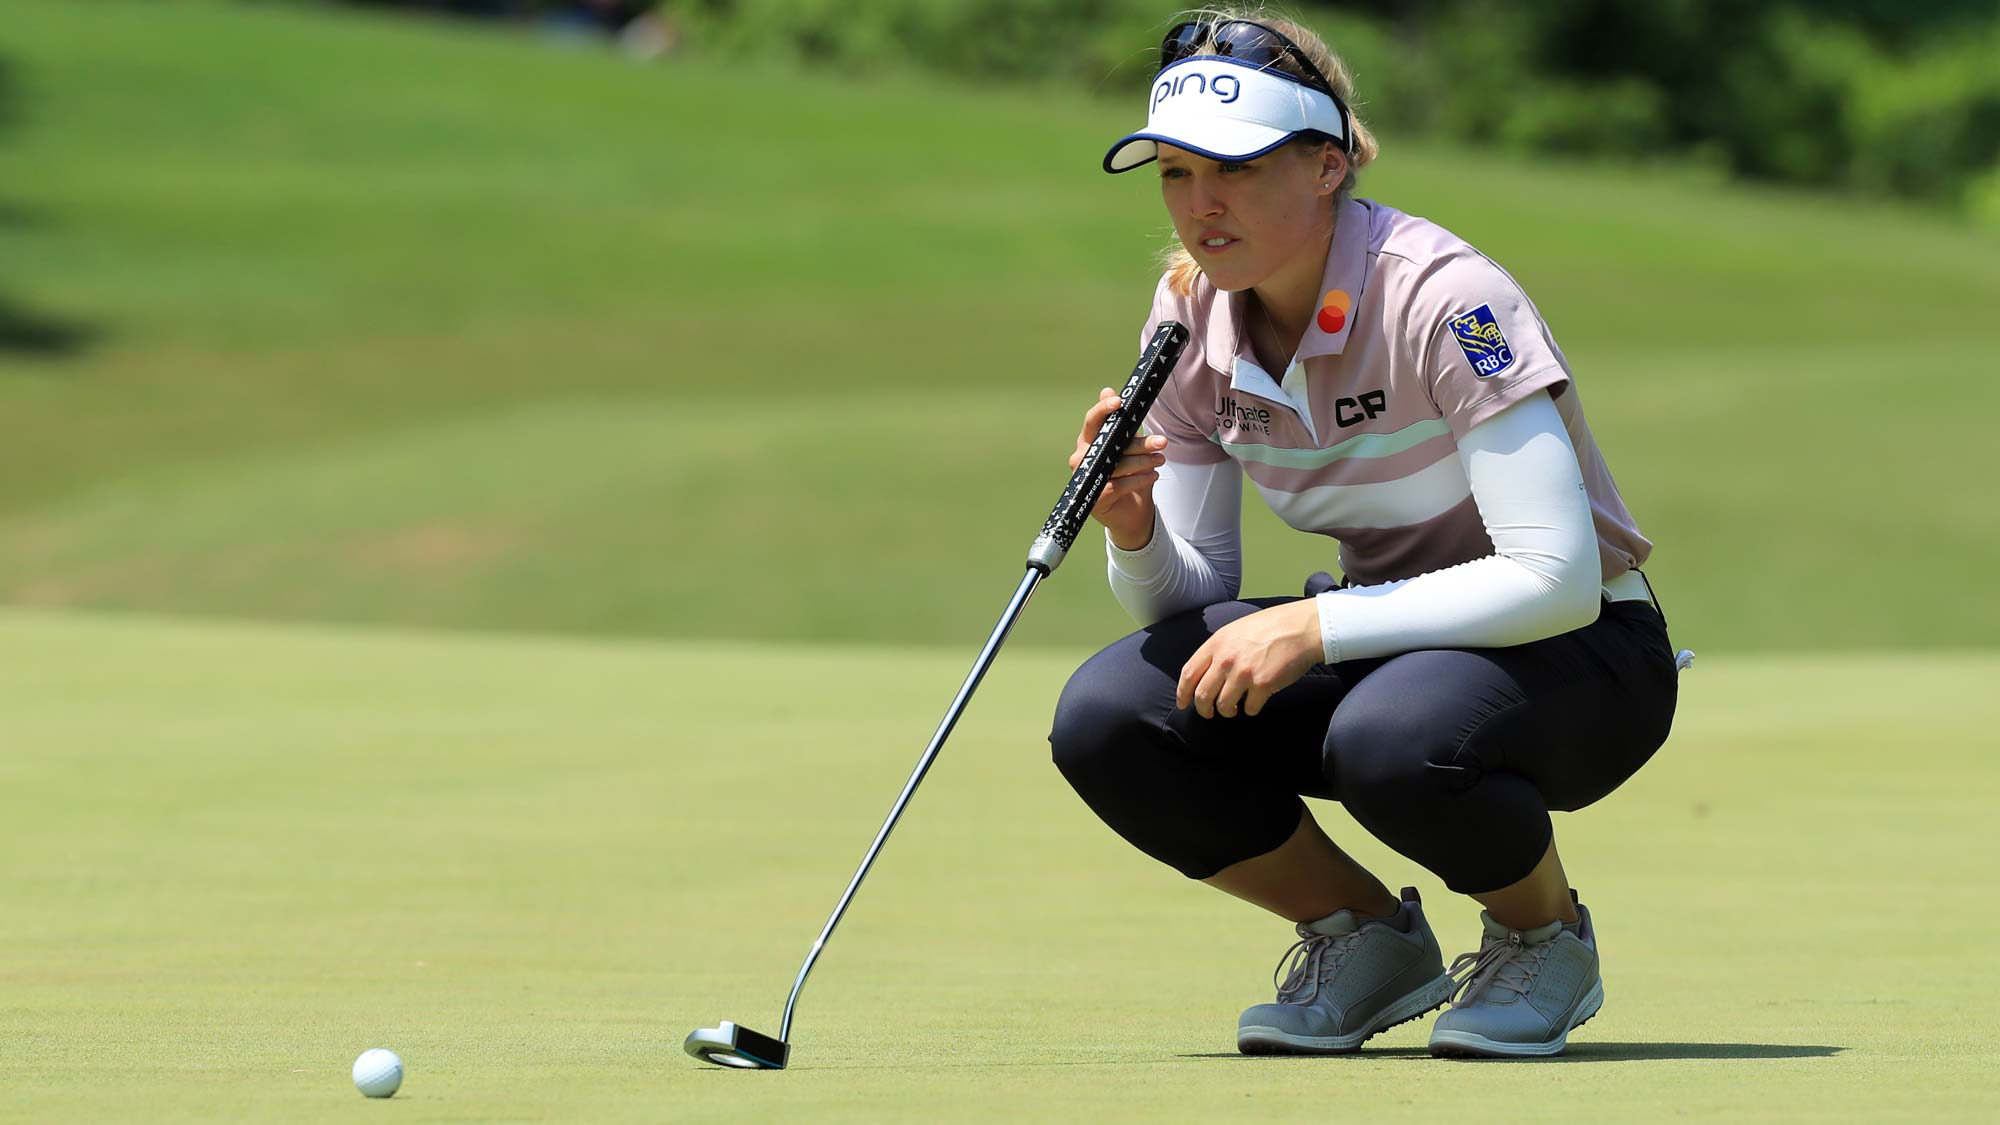 Brooke M. Henderson of Canada lines up her putt on the fourth hole during the first round of the Pure Silk Championship